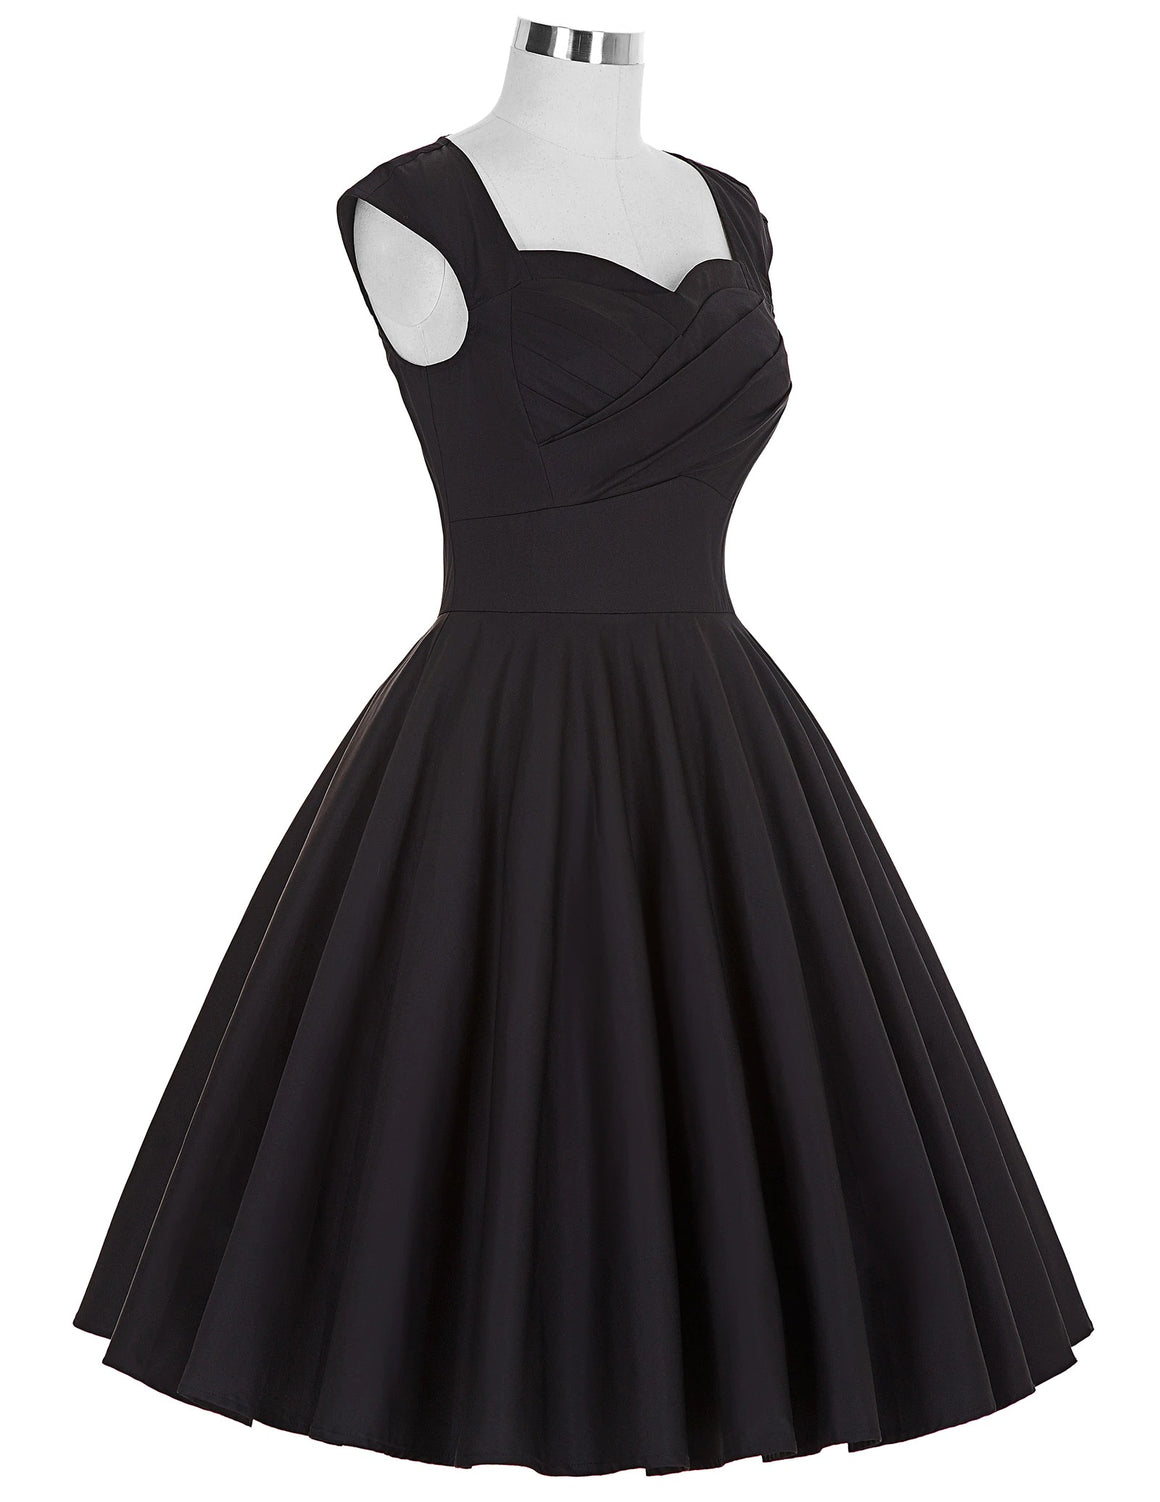 The Belle Dress in midnight black by Ponyboy Vintage Clothing!